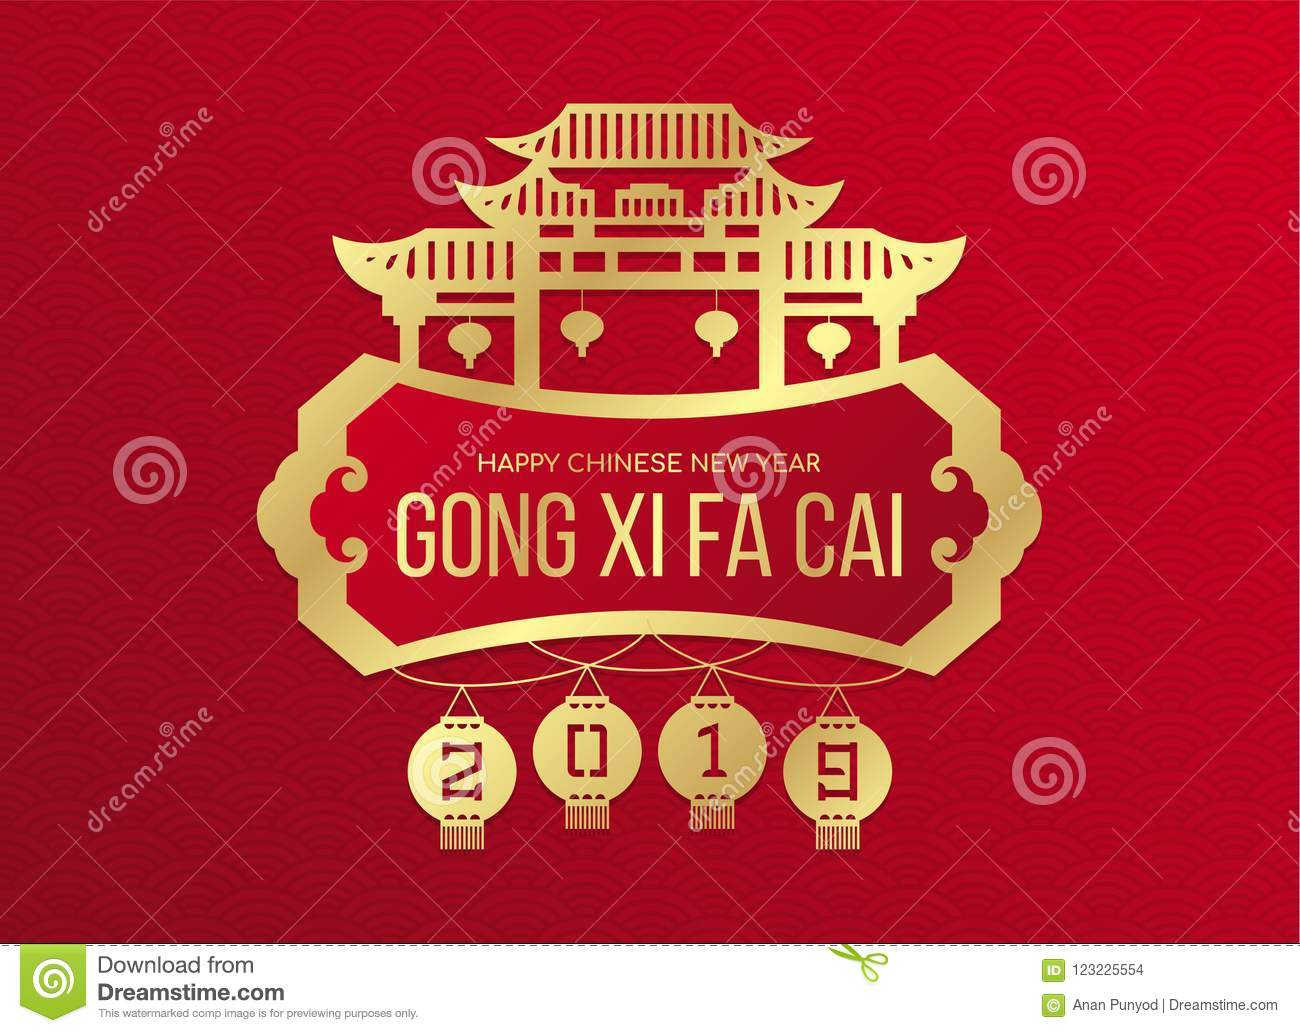 Happy chinese new year Gong xi fa cai banner with gold 2019 number of year in lantern hanger and china gate town sign on red ba